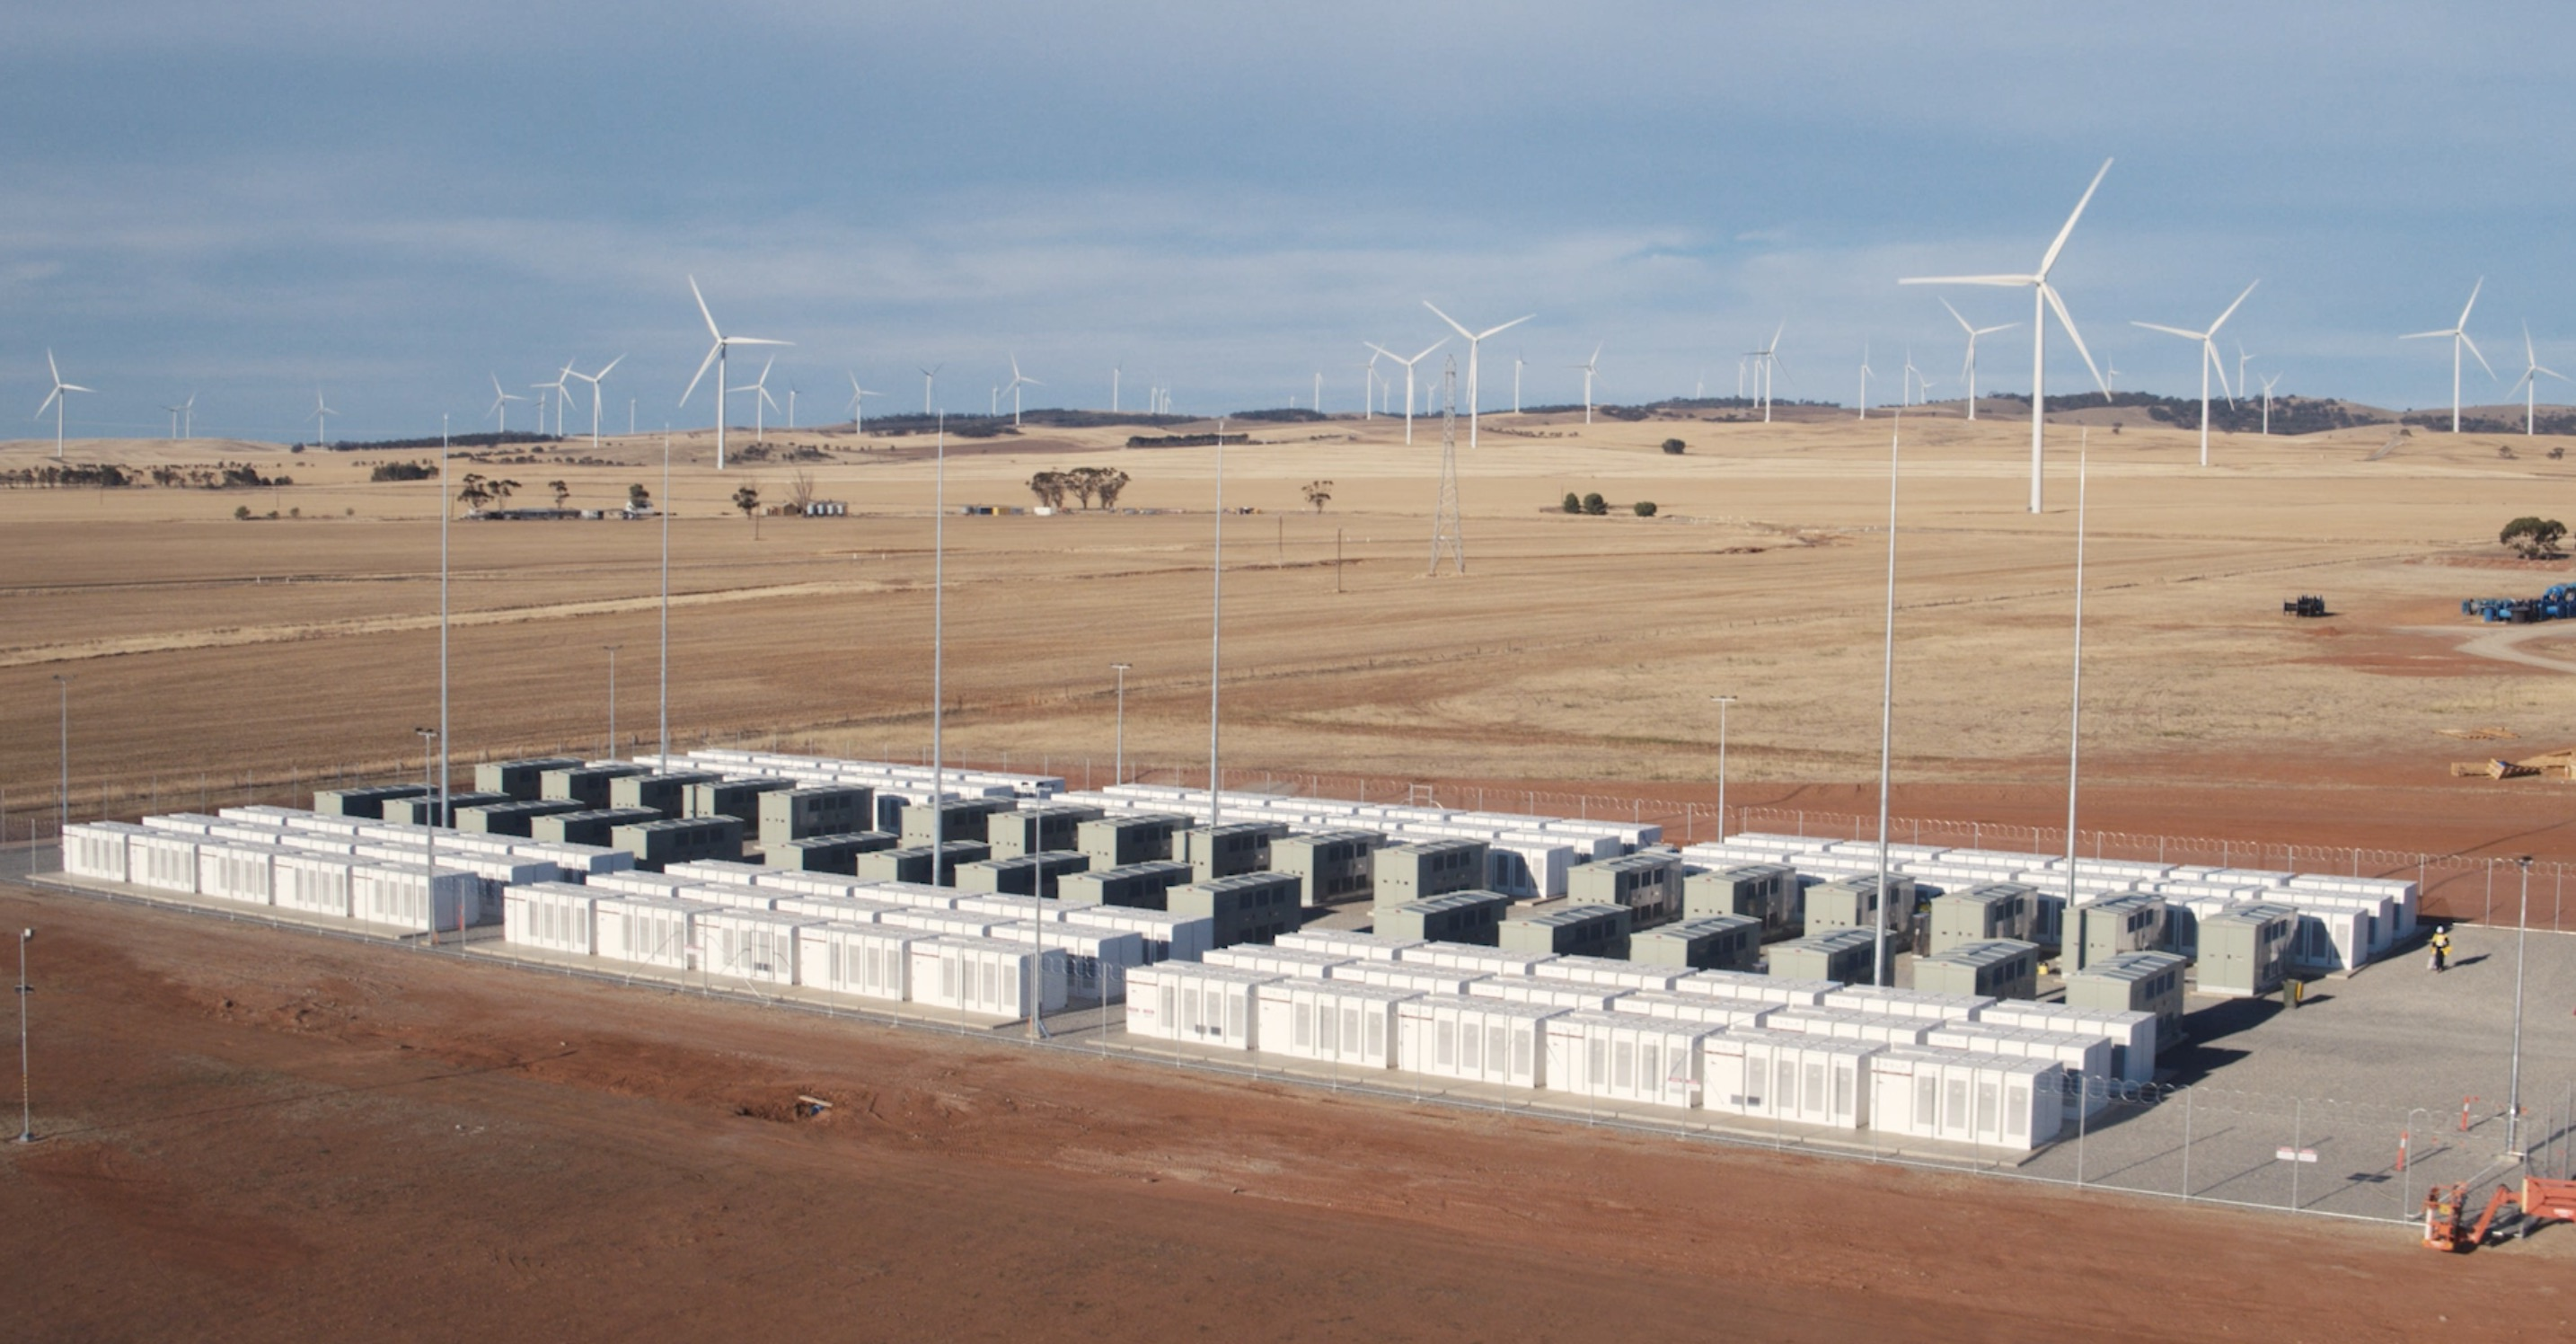 Tesla's giant battery saved $40 million during its first year, report says